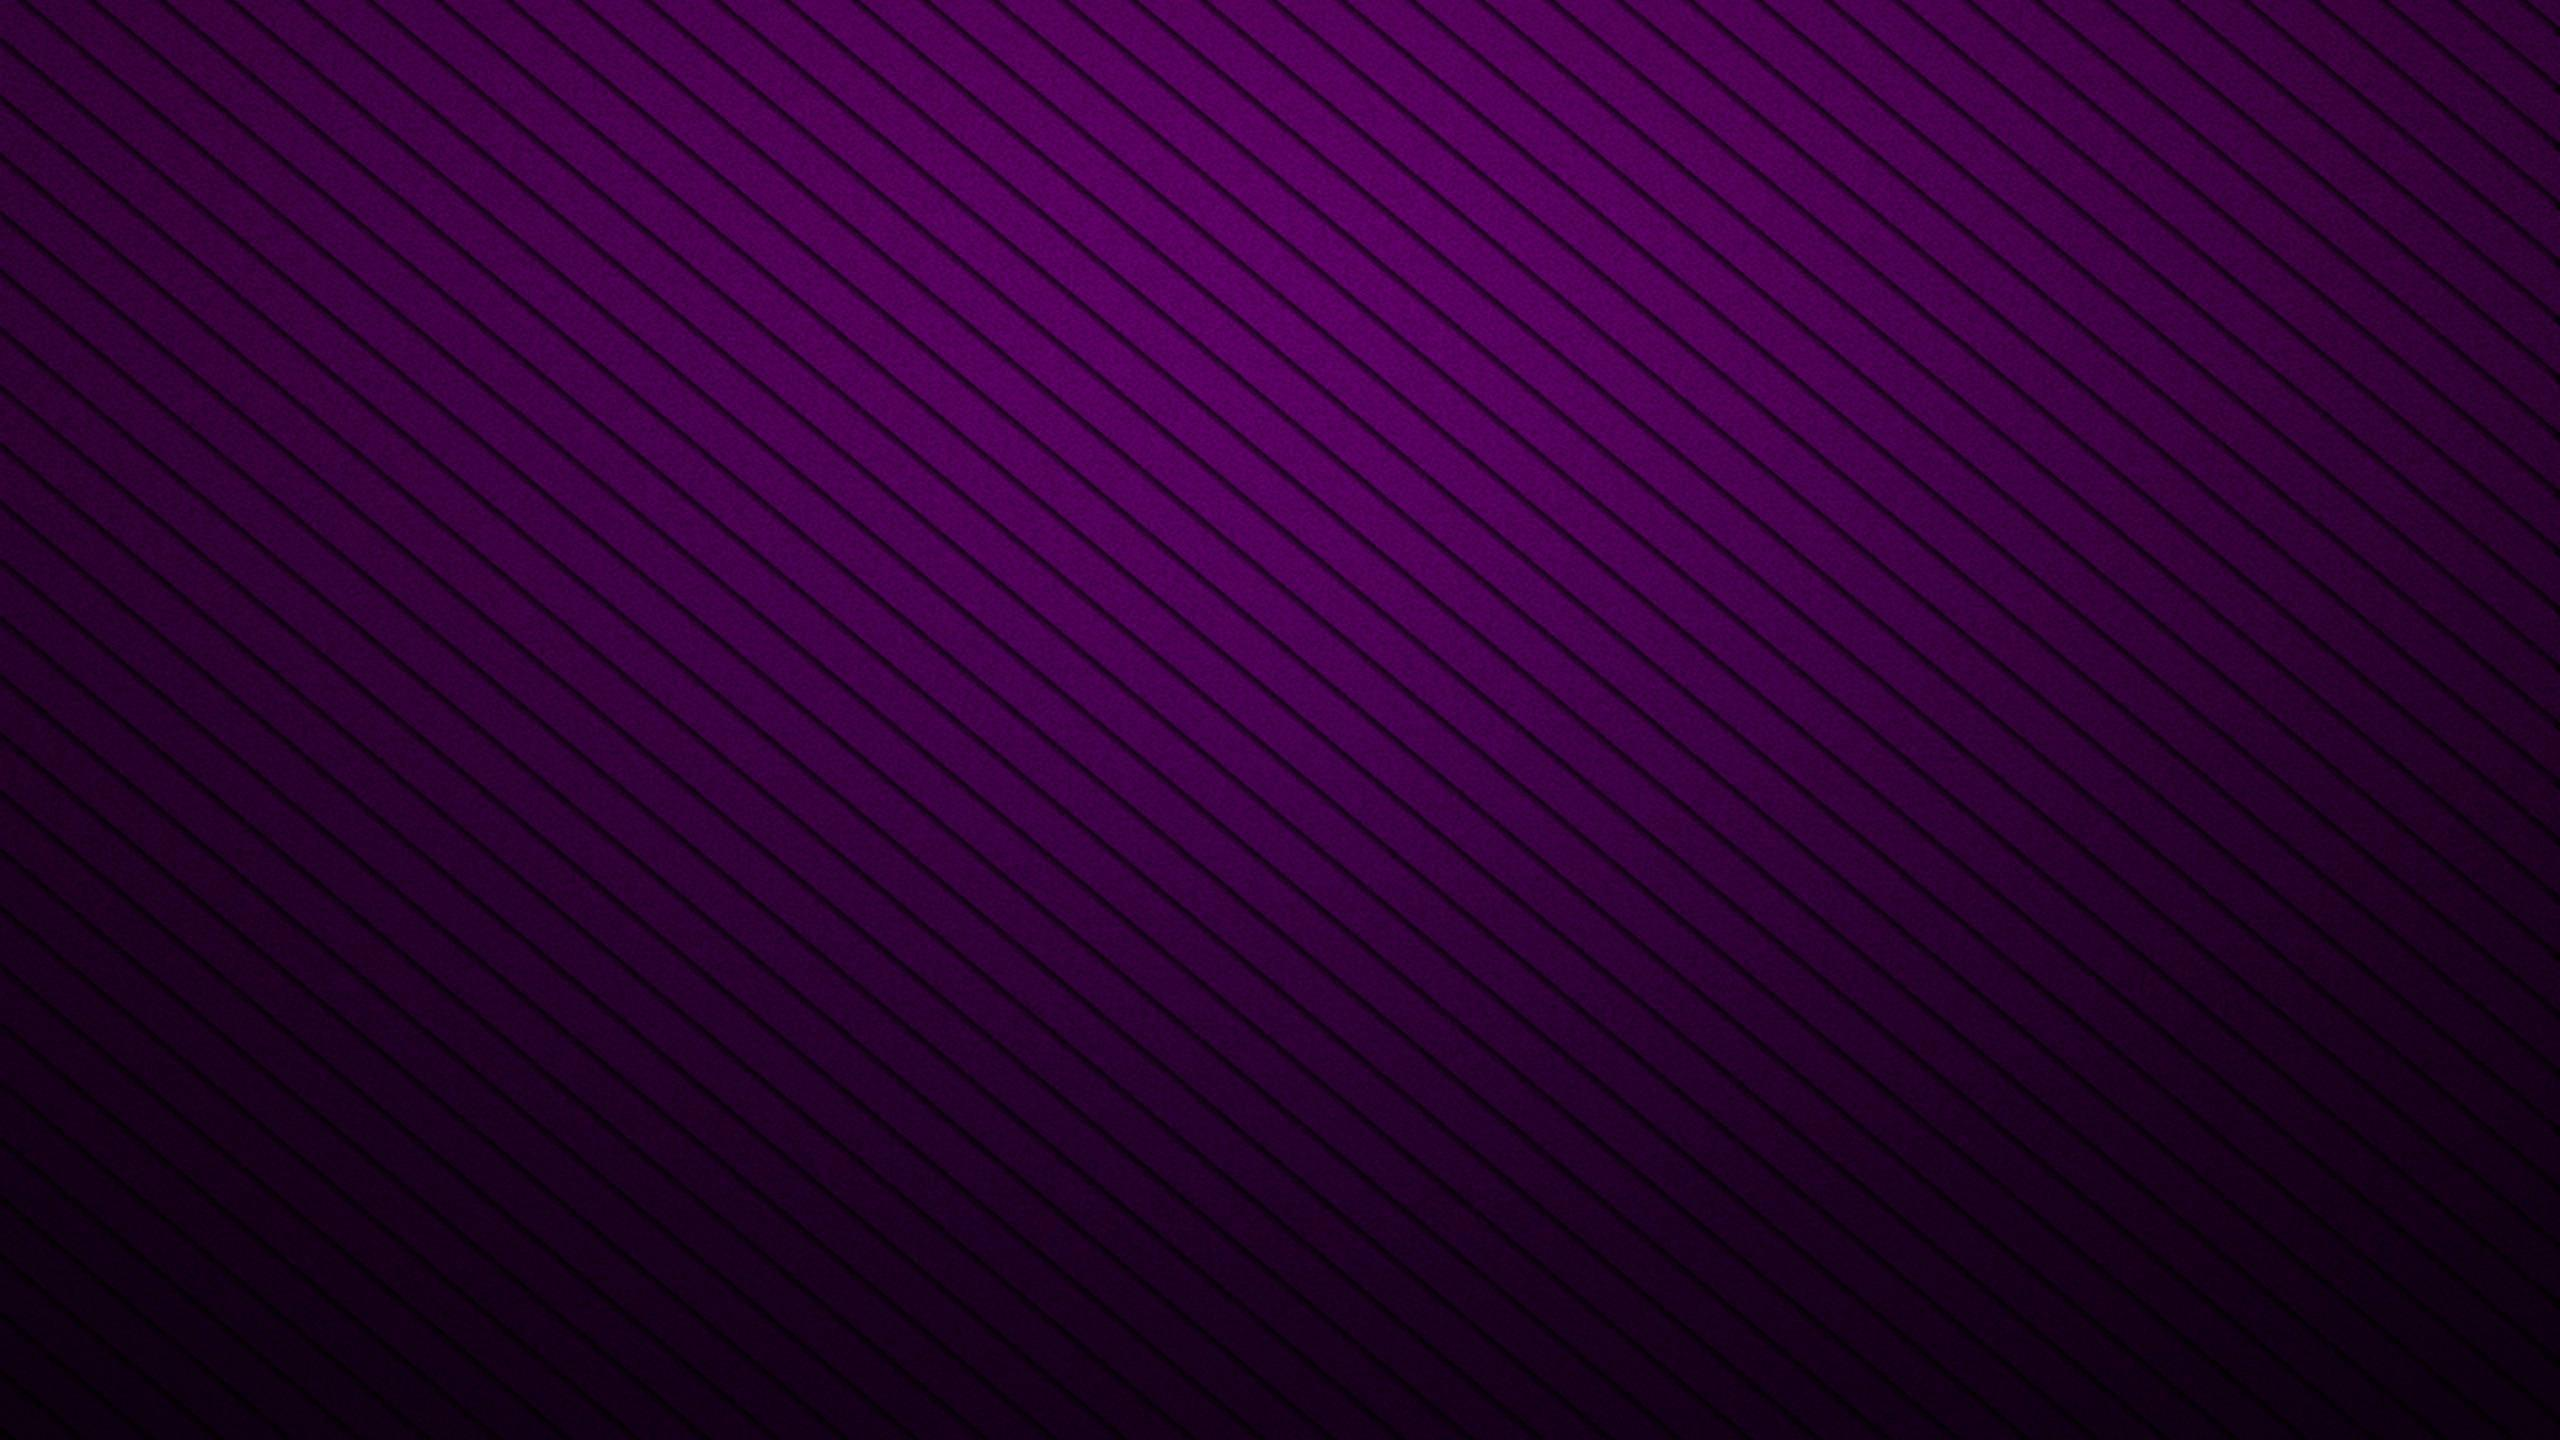 Purple And Black Texture Wallpapers Hd Picture 62141 Label: and